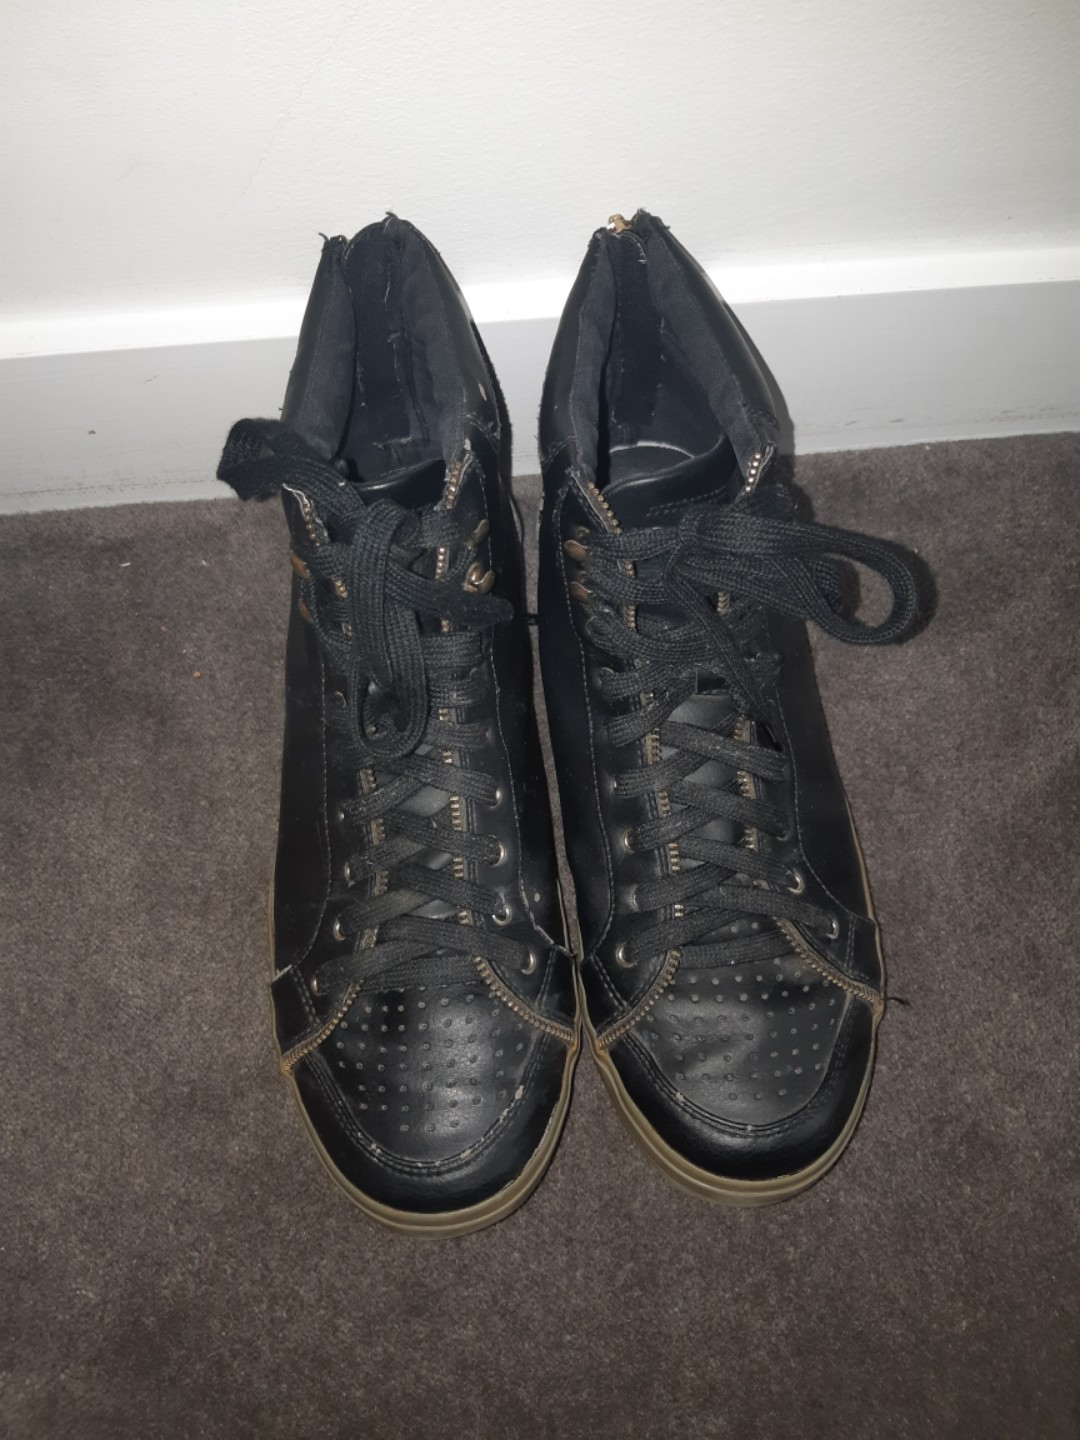 Size 10 Sportsgirl black and gold PU Leather Hightops with synthetic sole